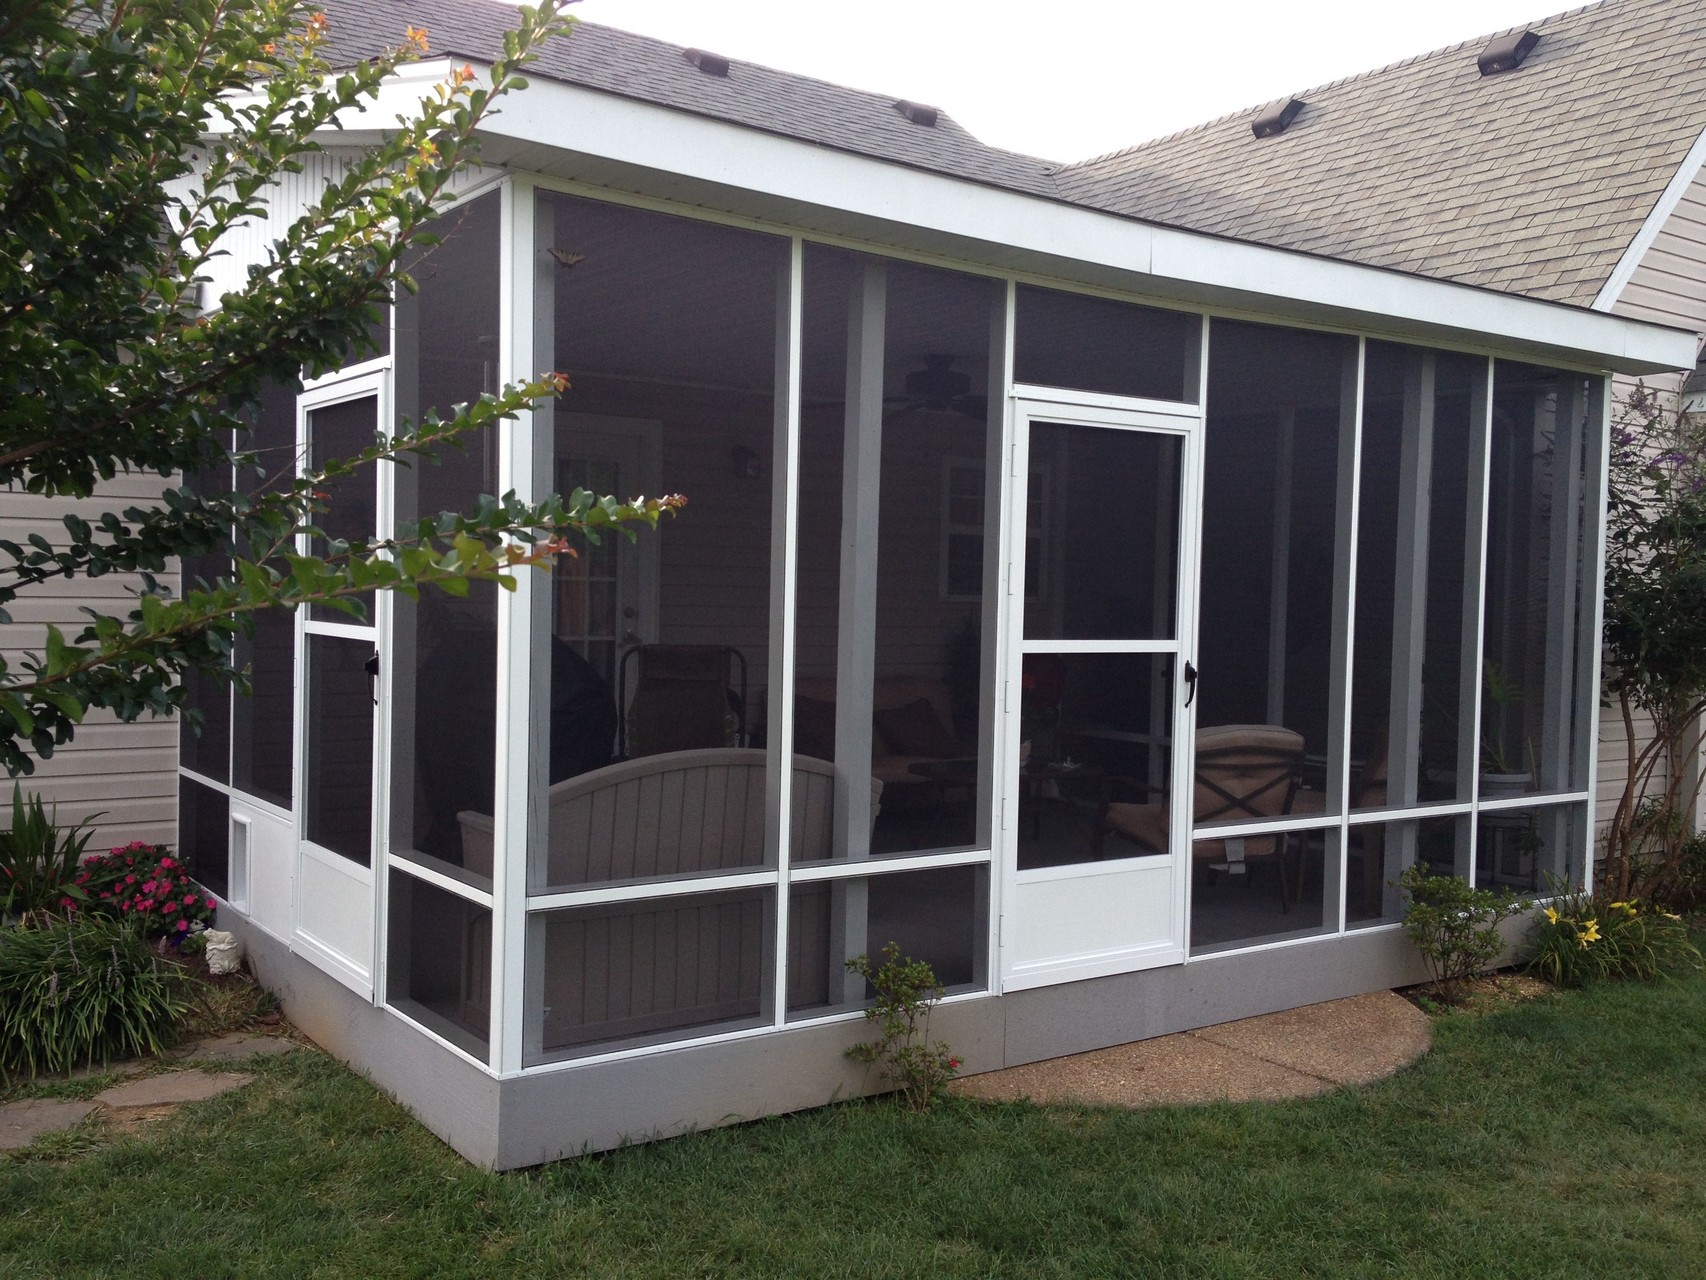 Delightful Thermavue Exteriors   Patio Covers, Carports, Screenrooms, Sunrooms,  Nashville, TN.   Thermavue Exteriors